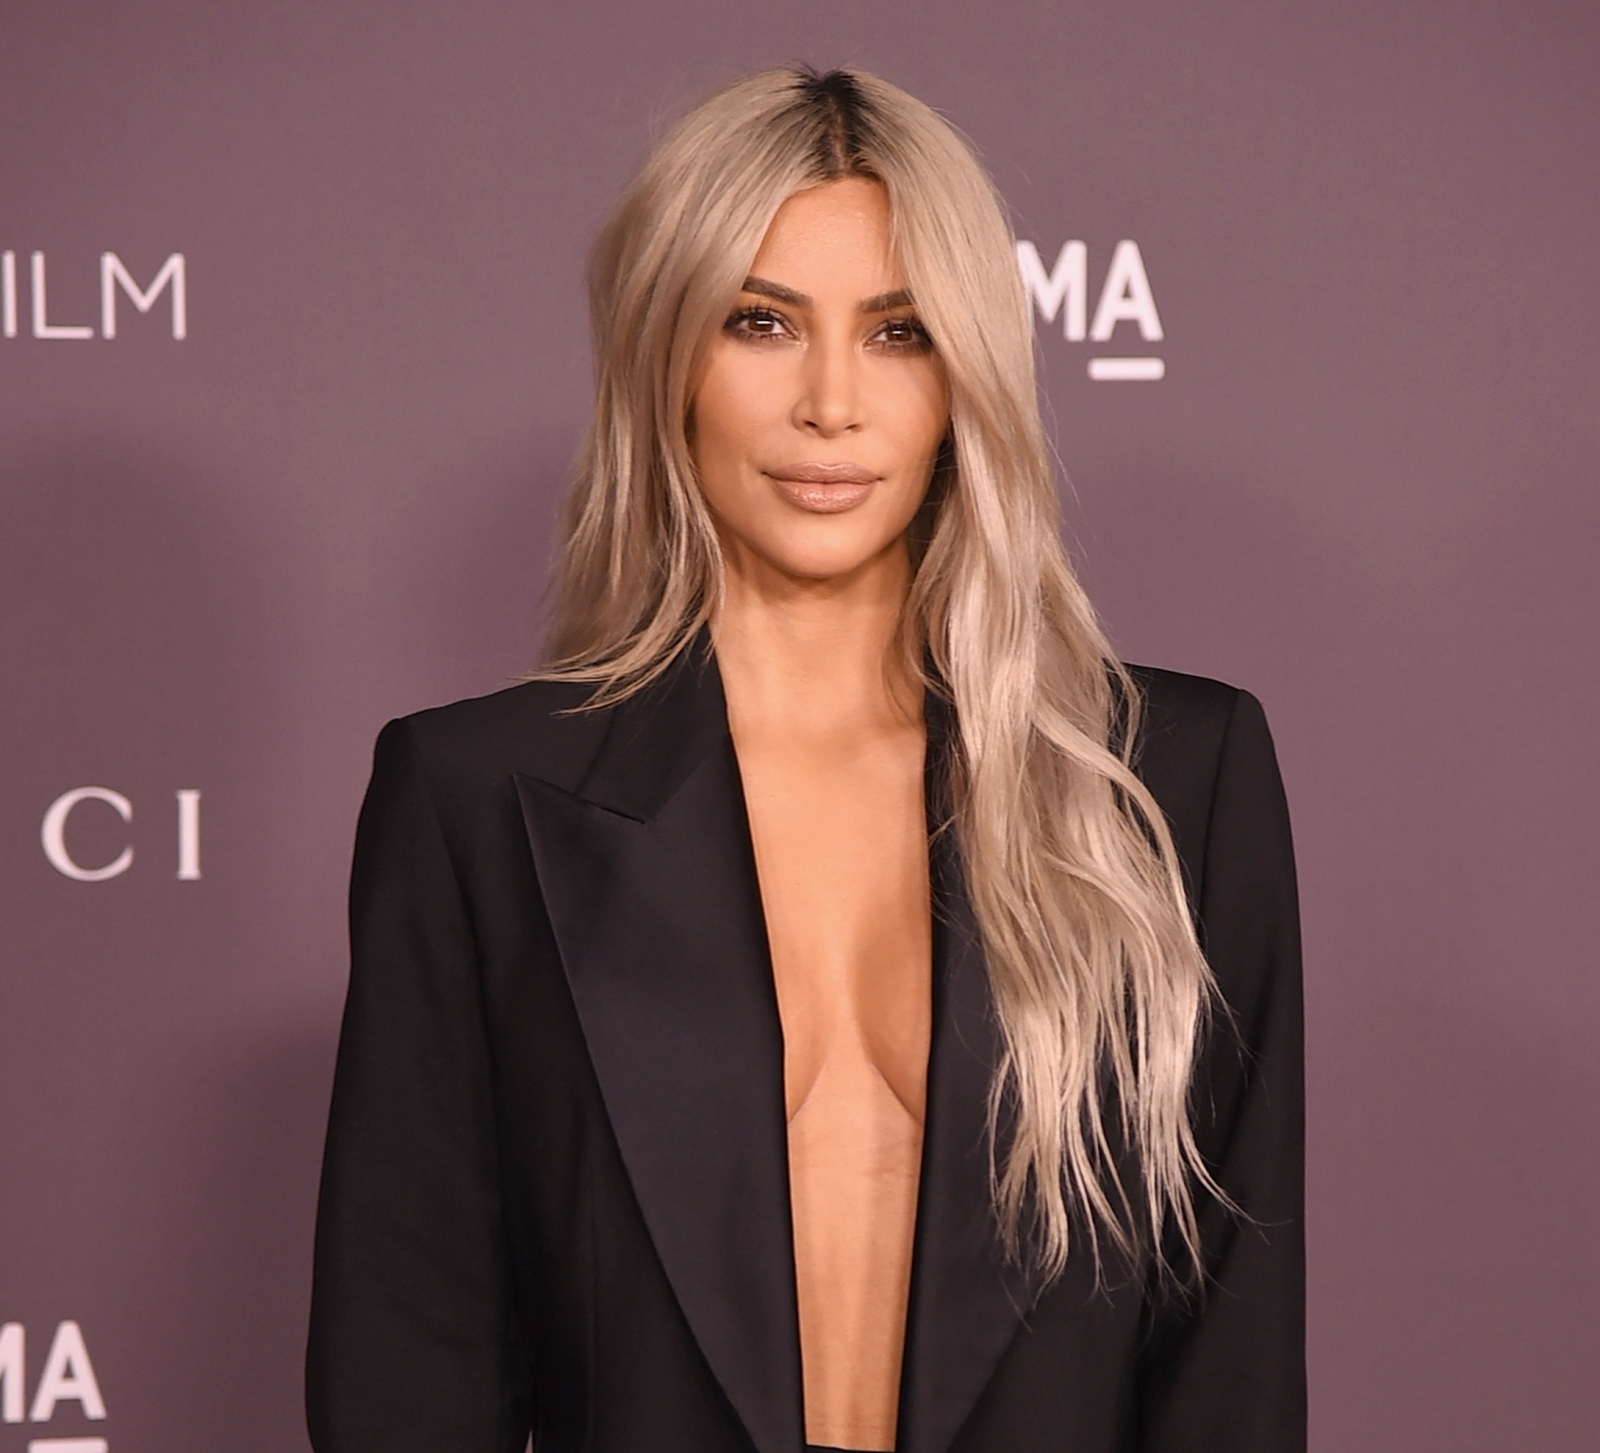 Here's what Kim Kardashian's grandmother thinks of reality star's nude photos on social media